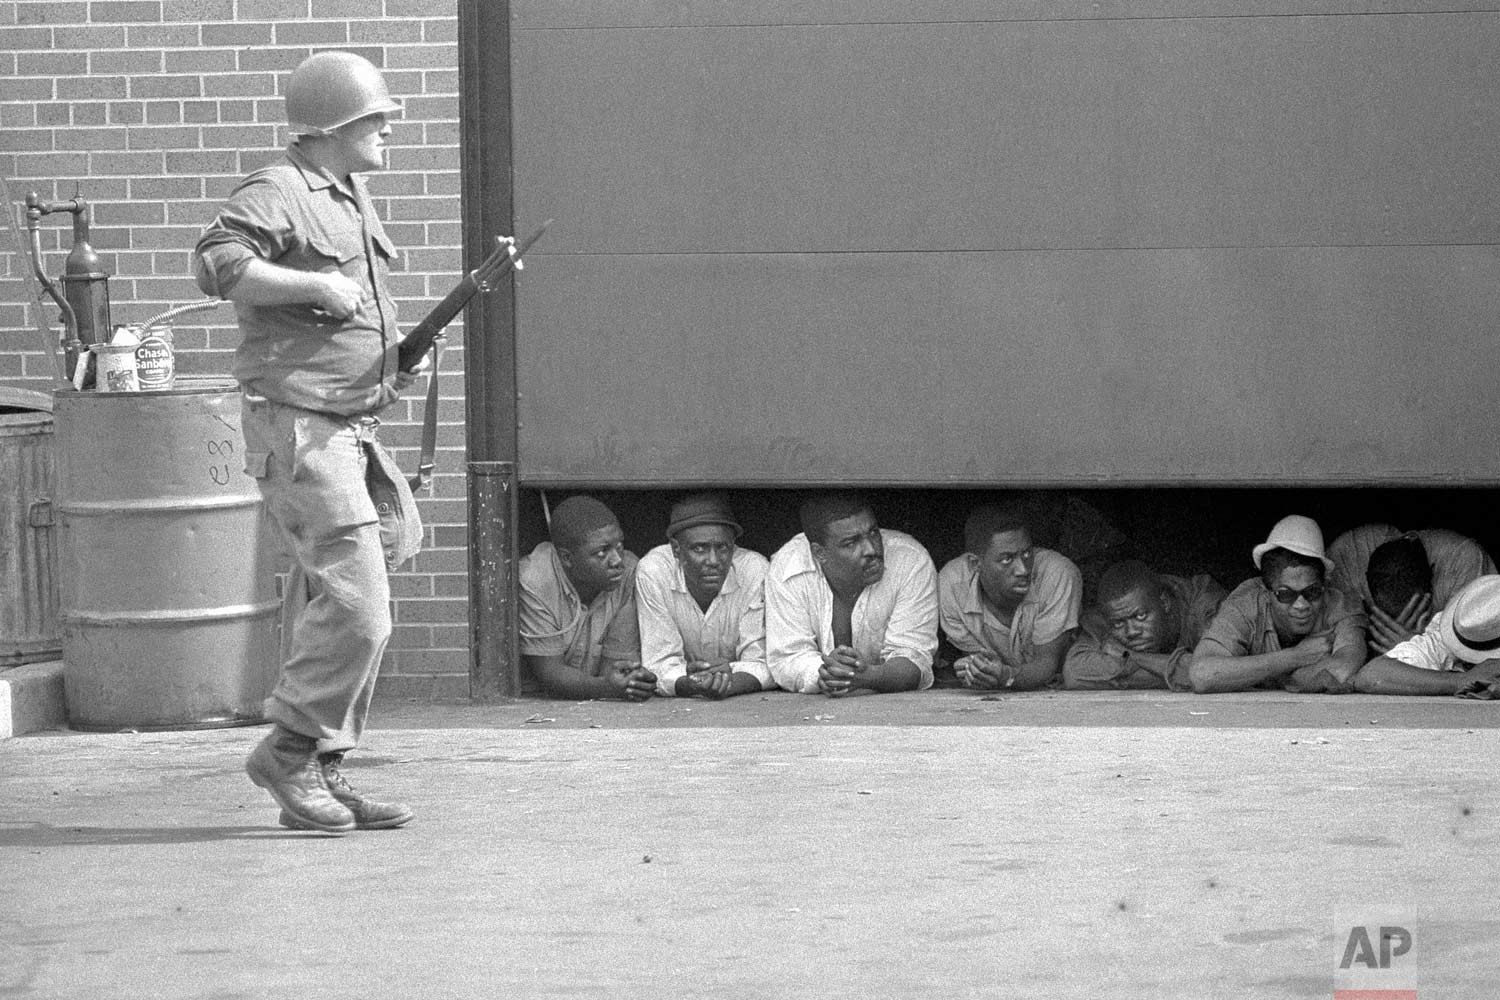 In this July 26, 1967 photo, an Army soldier stands guard as men captured in the vicinity of the 10th Police Precinct in Detroit peer from under a garage door awaiting transfer. The precinct building came under fire in daylight hours and an Army force, using armed personnel carriers and tanks came to the police station. (AP Photo)